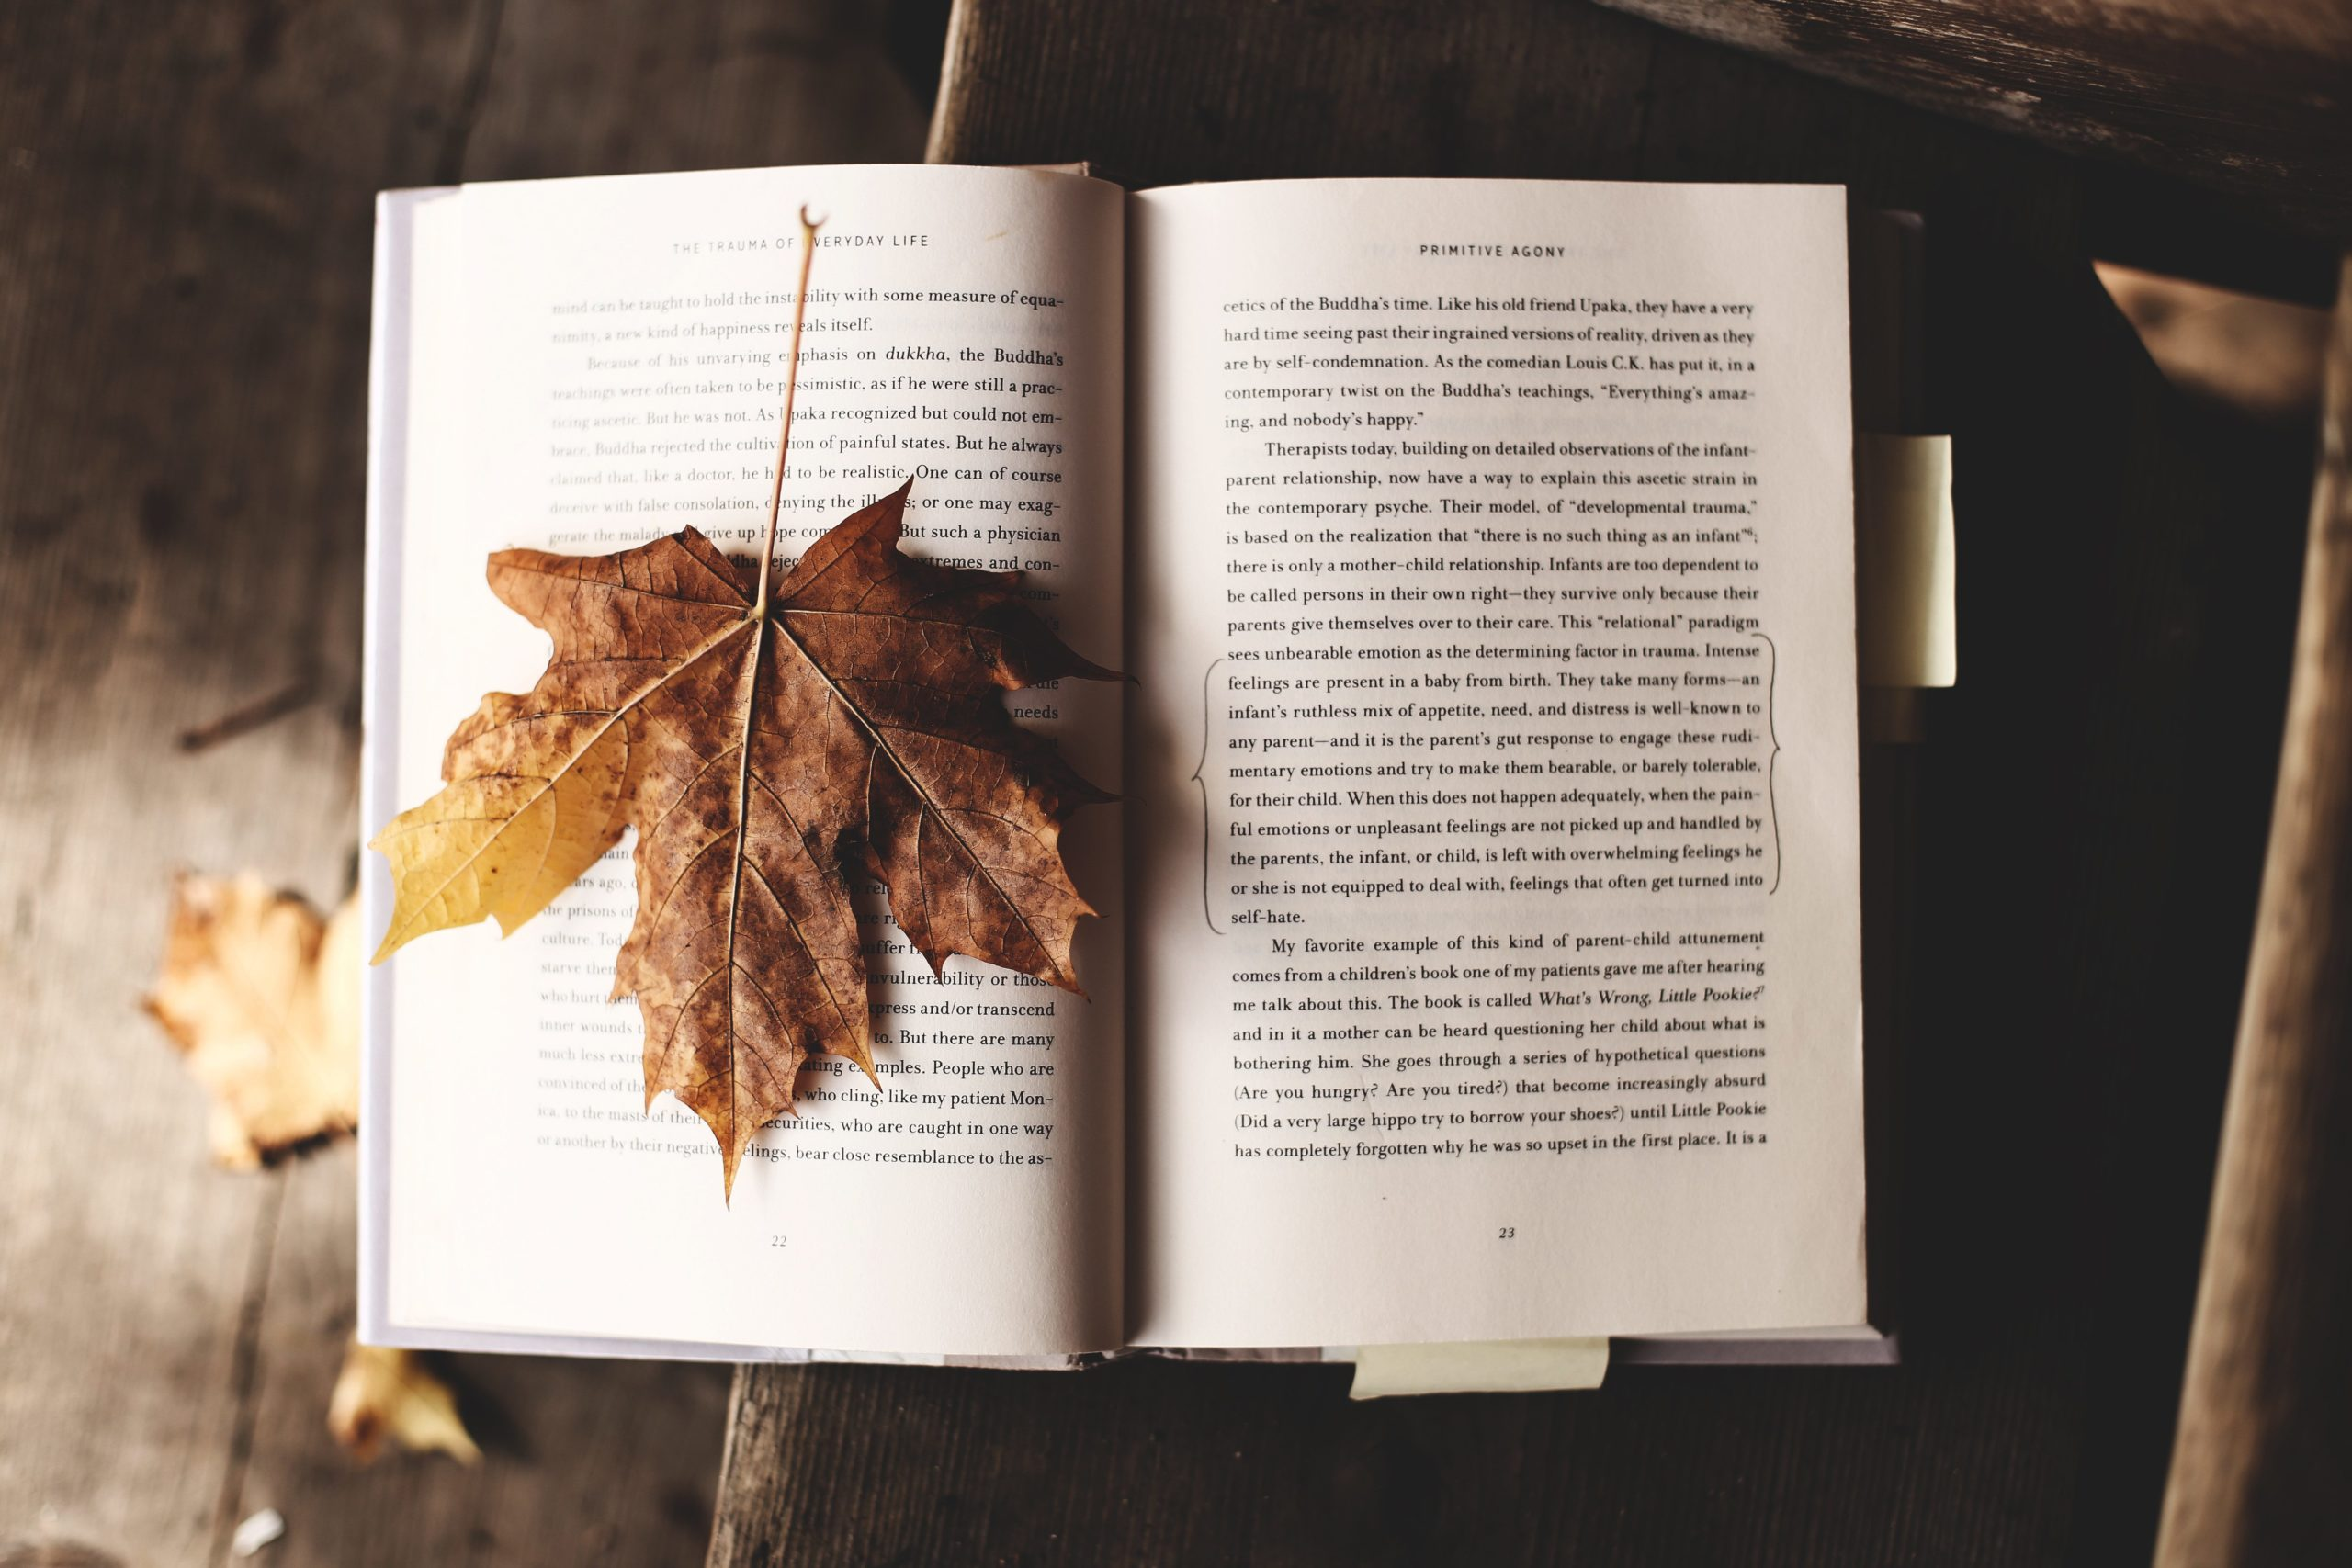 5 Books I Want To Read This Fall